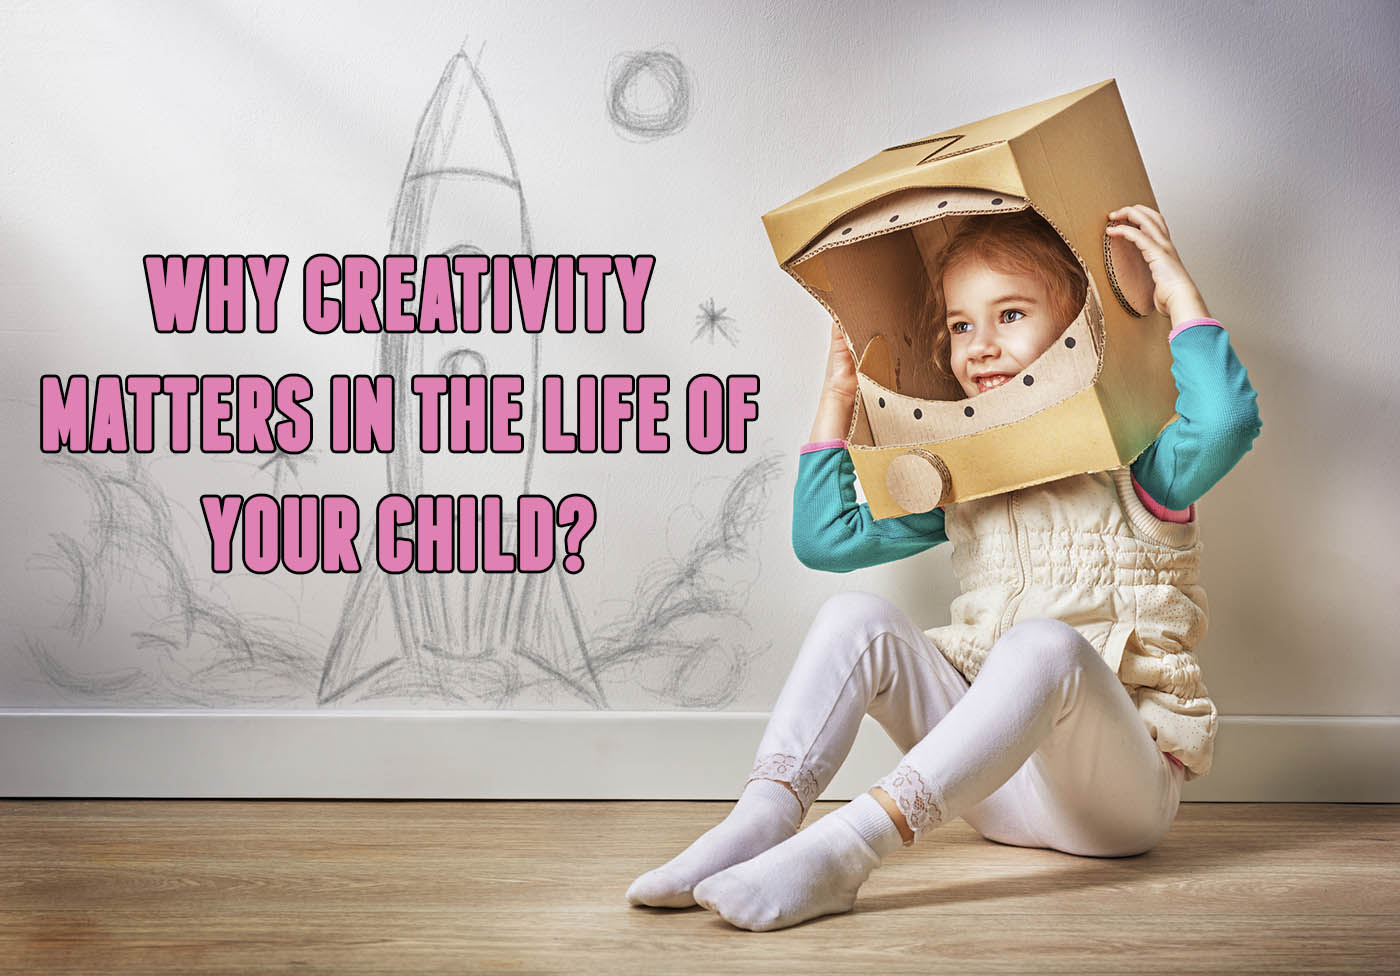 a young girl is pretending using a cardboard box as an astronaut helmet which is on her head. Pink text say Why Creativity Matters in the Life of Your Child is on top of a rocket ship that was drawn on the wall where the child sits